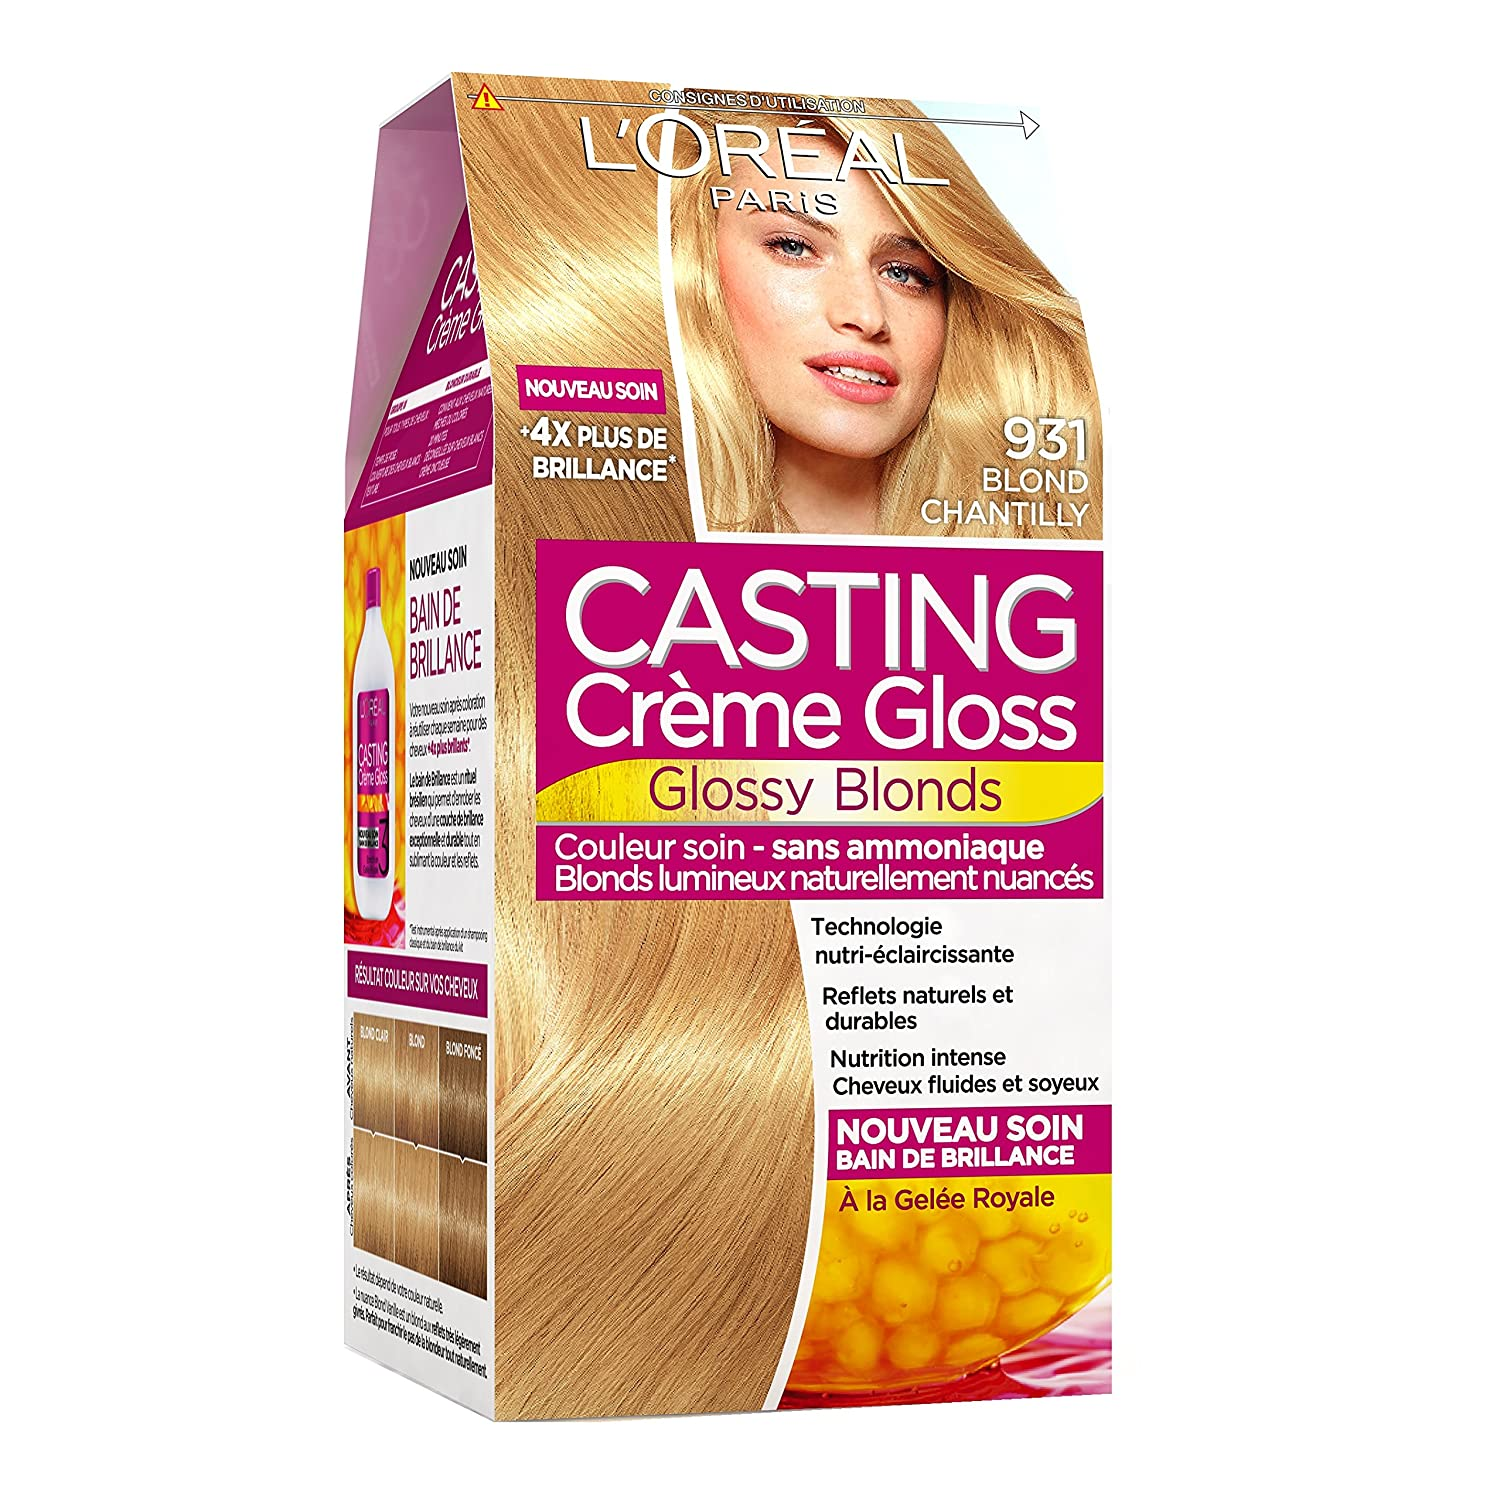 casting crme gloss ton sur ton coloration sans ammoniaque 931 blond chantilly - Quelle Coloration Sans Ammoniaque Choisir